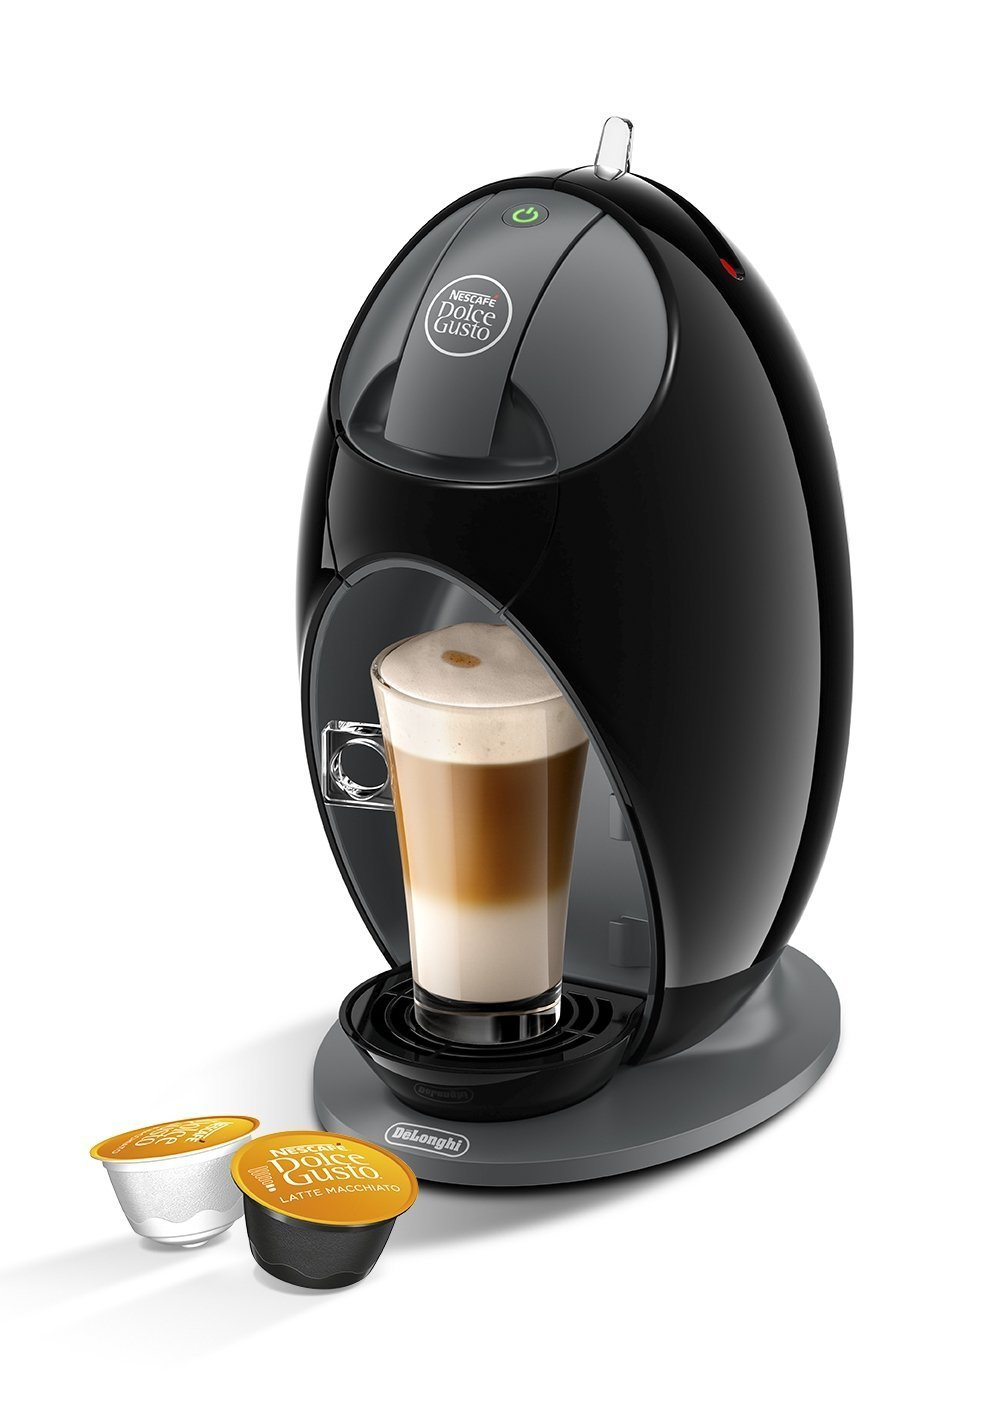 Nescaf Dolce Gusto Coffee Machine Jovia Manual Coffee by De'Longhi EDG250.B - Black (Certified Refurbished) Delonghi